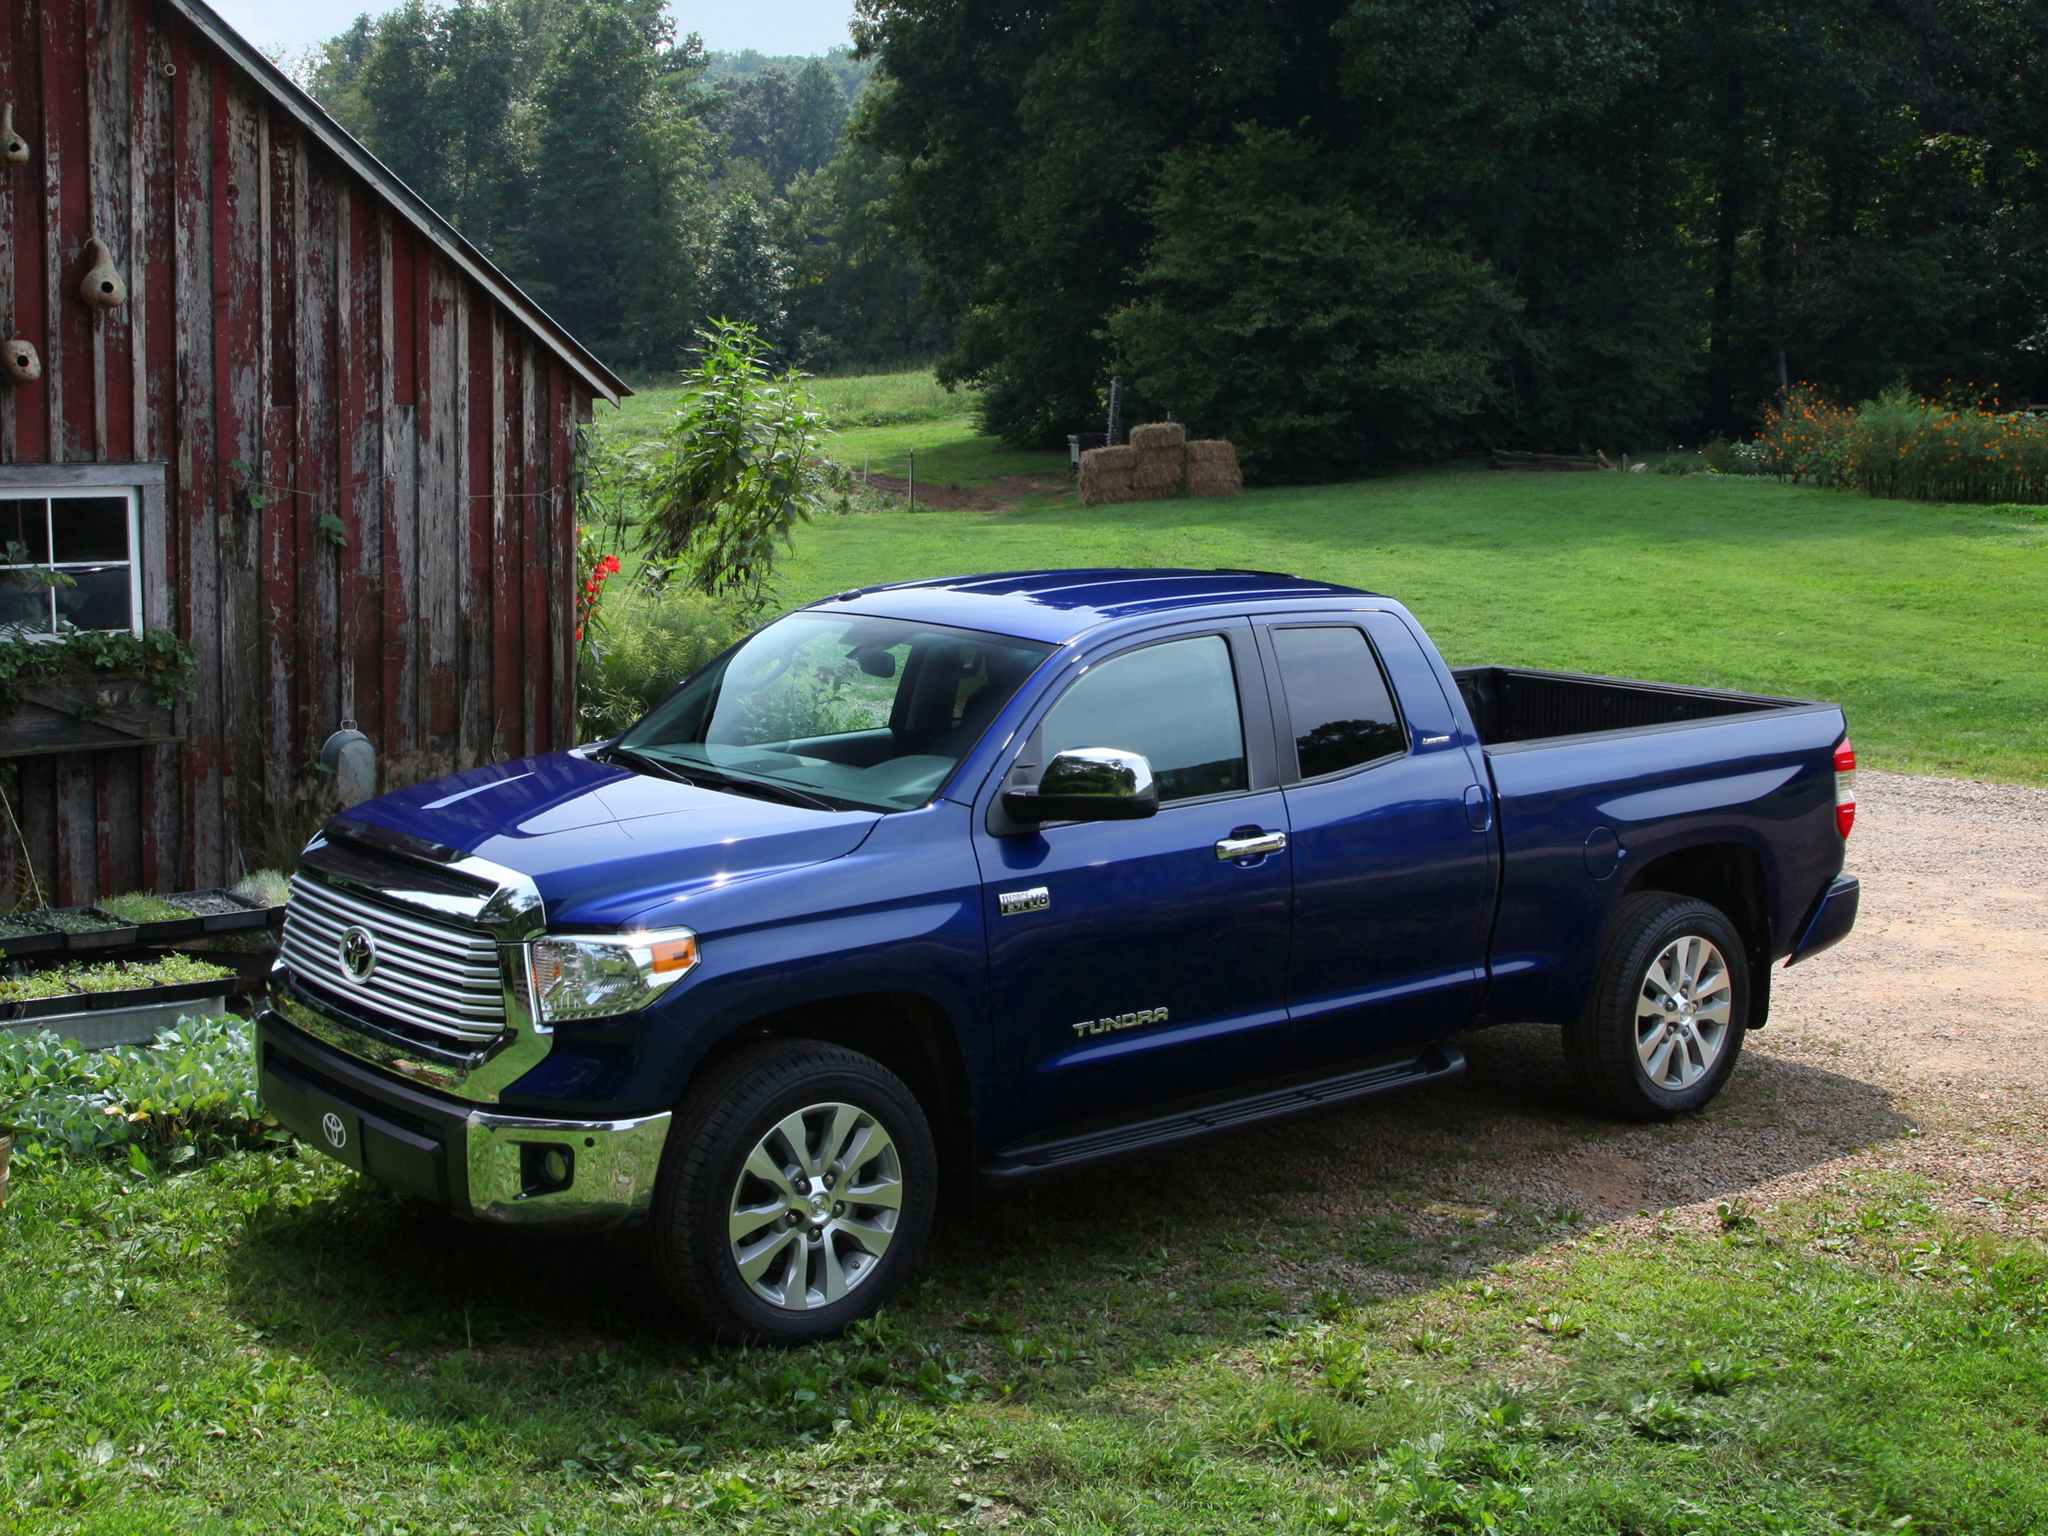 2014 Toyota Tundra Double Cab Limited pickup g wallpaper 2048x1536 2048x1536